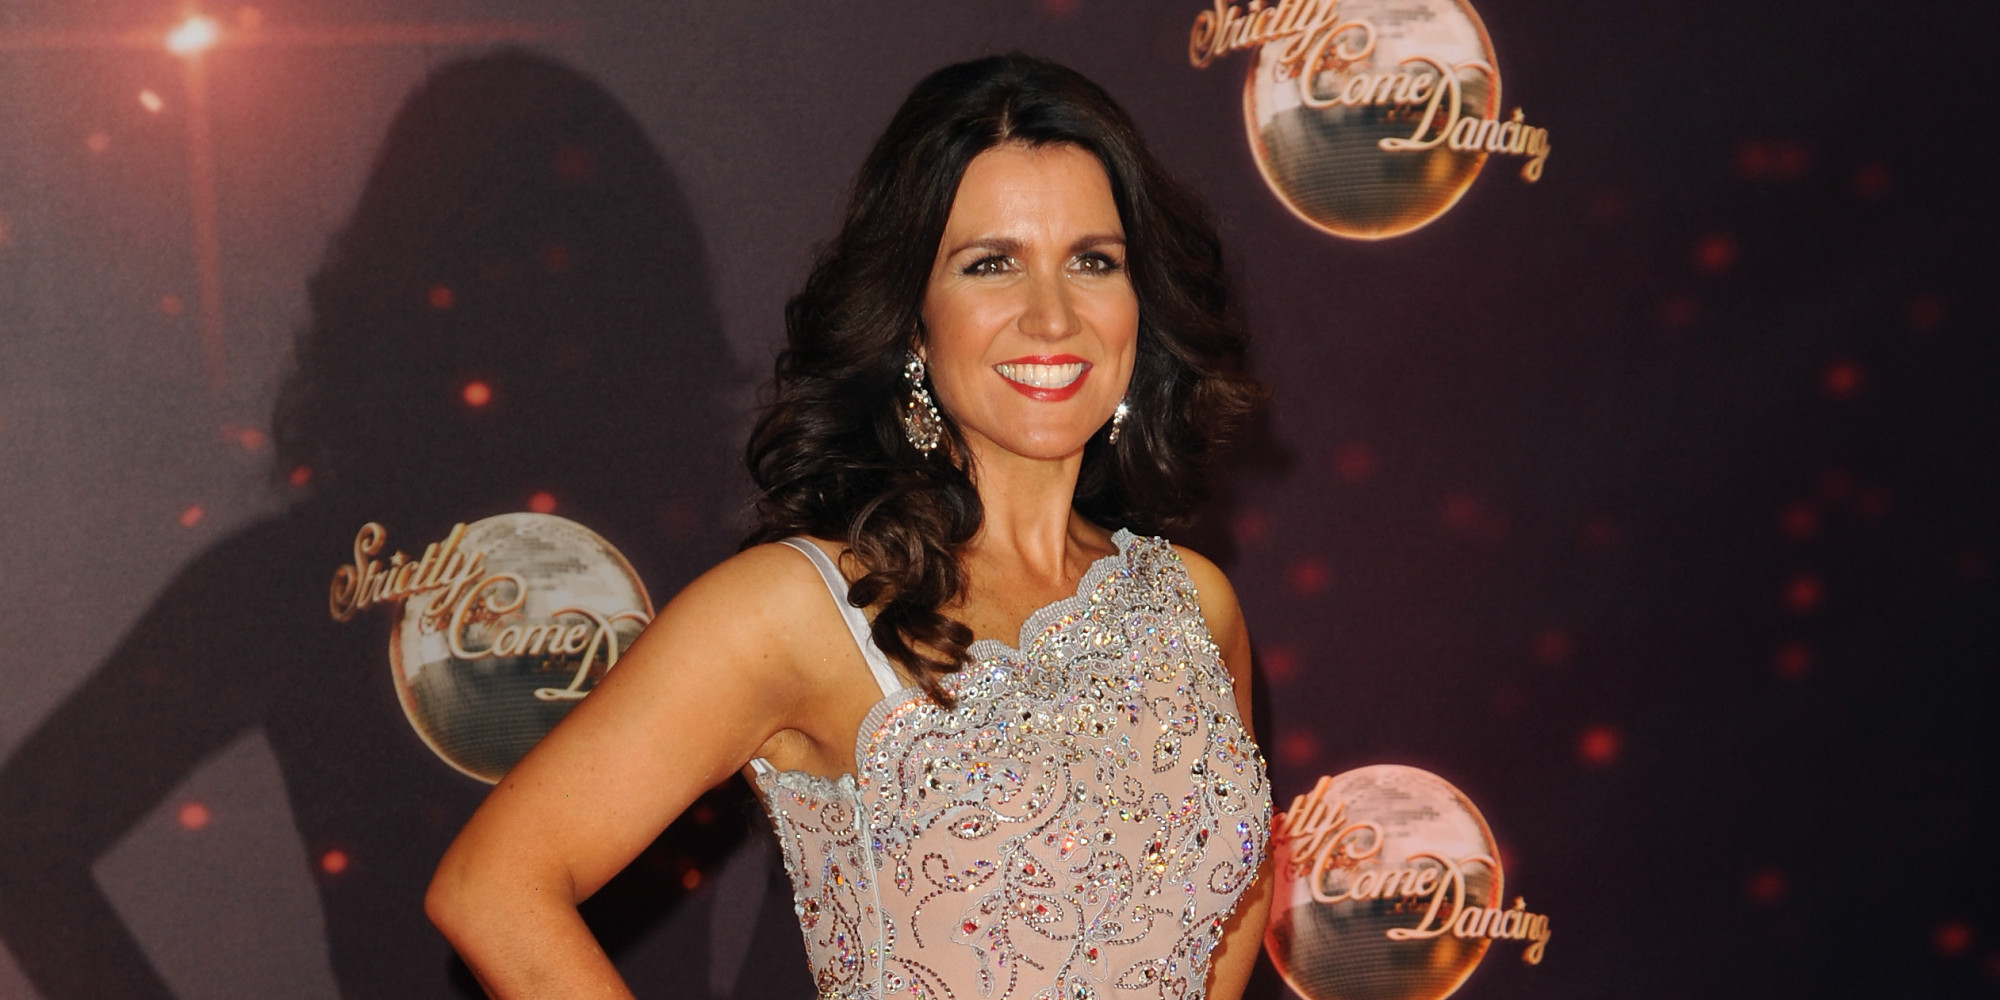 The susanna reid knickers staged